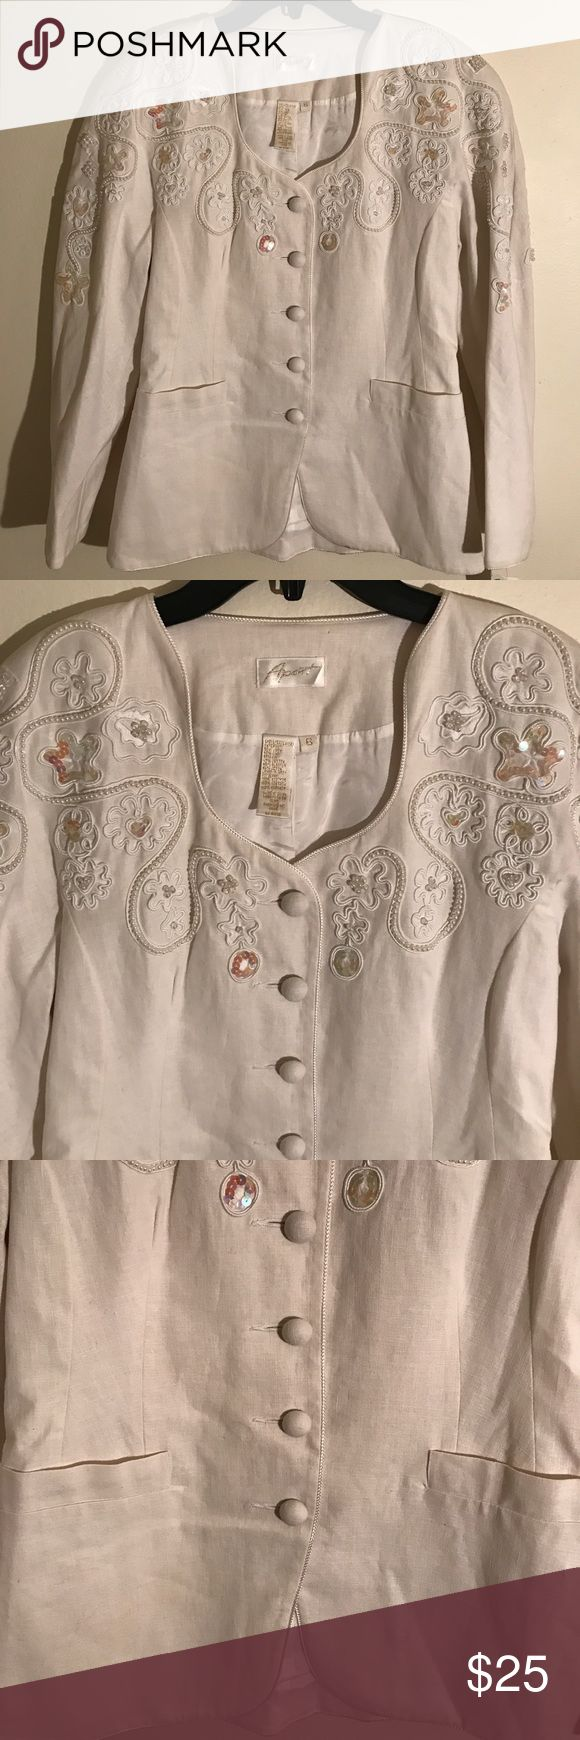 😳$15 SALE😳Apart Absolutely Stunning White Blazer EXCELLENT CONDITION NO FLAWS!Details, measurements and modeling photos coming Monday . If you're interested and need to know, please message me.YOU CAN CHOOSE TO PURCHASE ONLY 1 ITEM, BUT YOU CAN ONLY PURCHASE UP TO 3 ITEMS PER ORDER. OR YOUR ORDER WILL BE CANCELLED. Apart Jackets & Coats Blazers